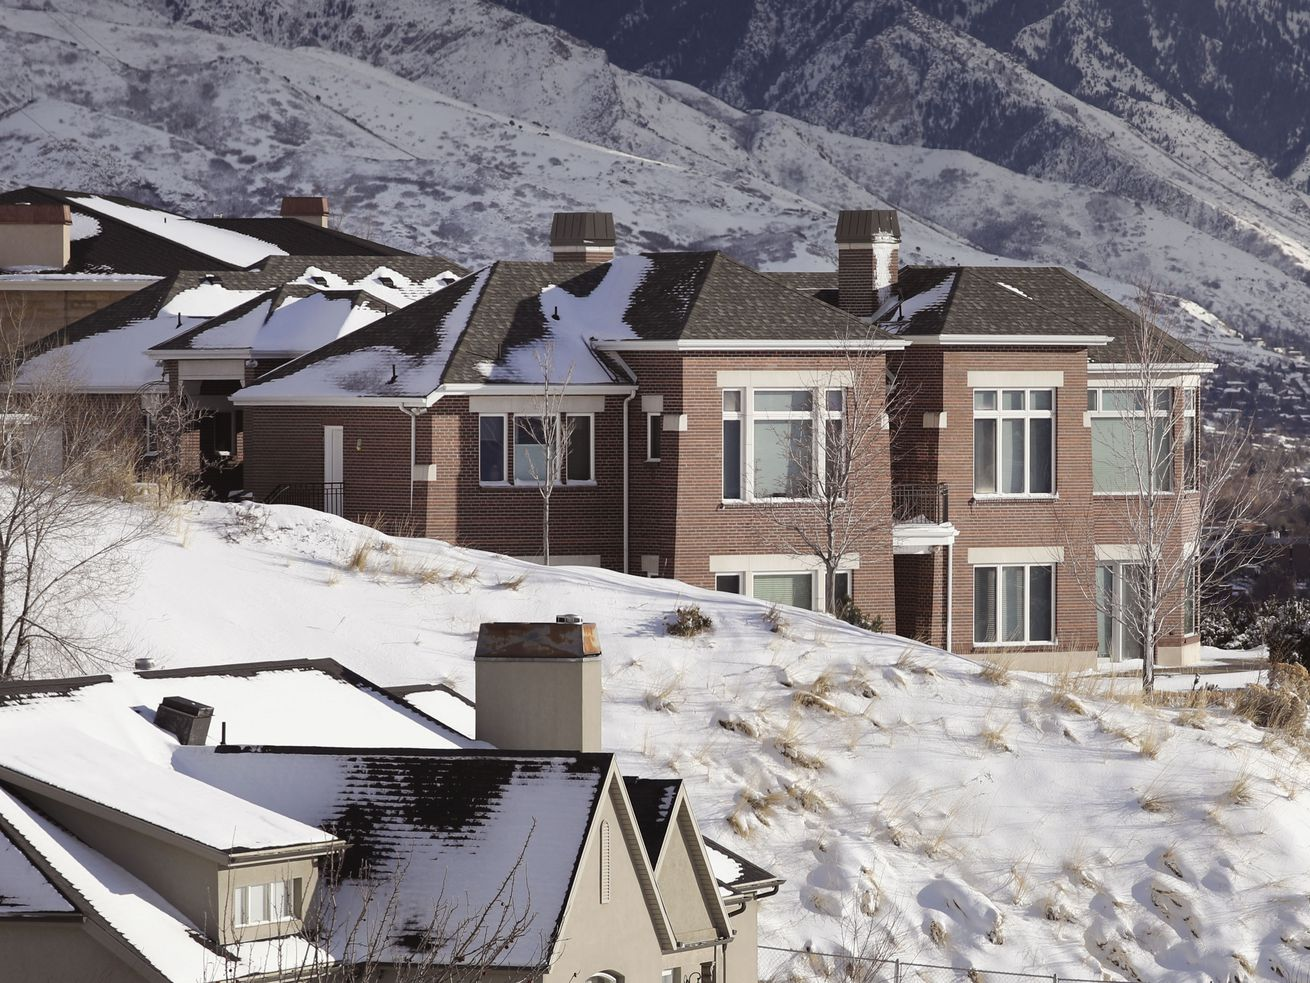 Utah housing prices expected to continue rise to record prices